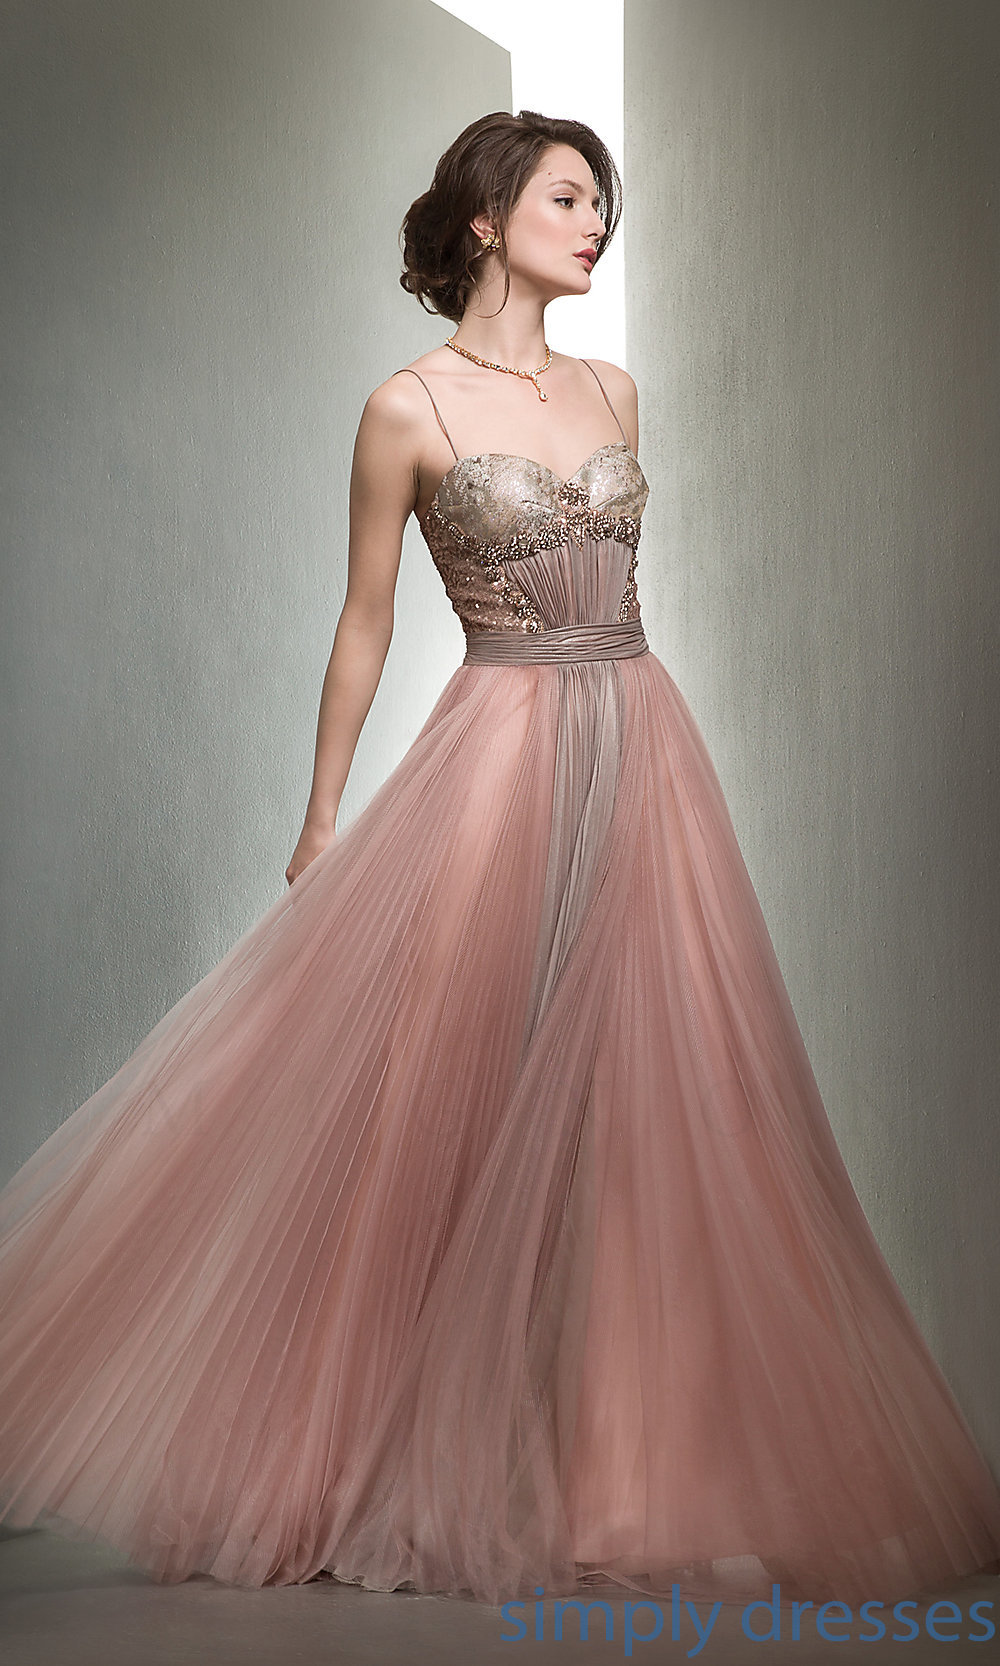 Long Spaghetti Strap Sweetheart Ball Gown by Mignon